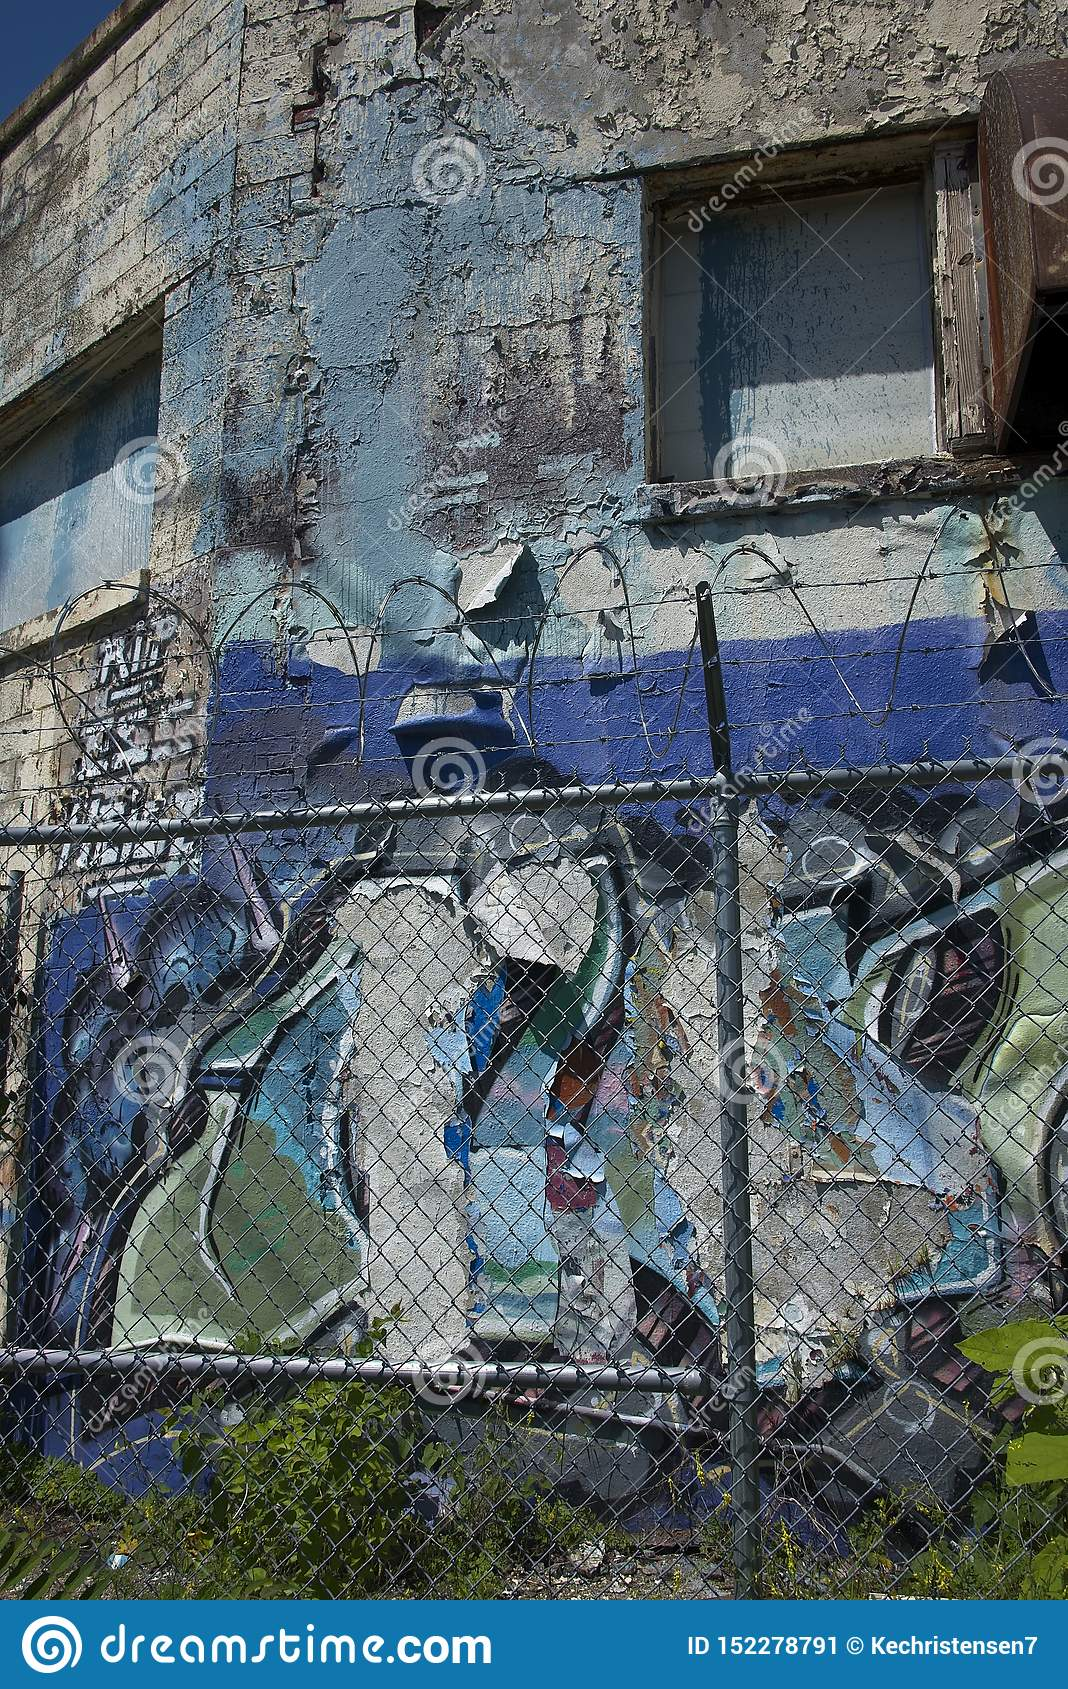 Abandoned Building with Peeling Paint and Barbed Wire Coil Fence